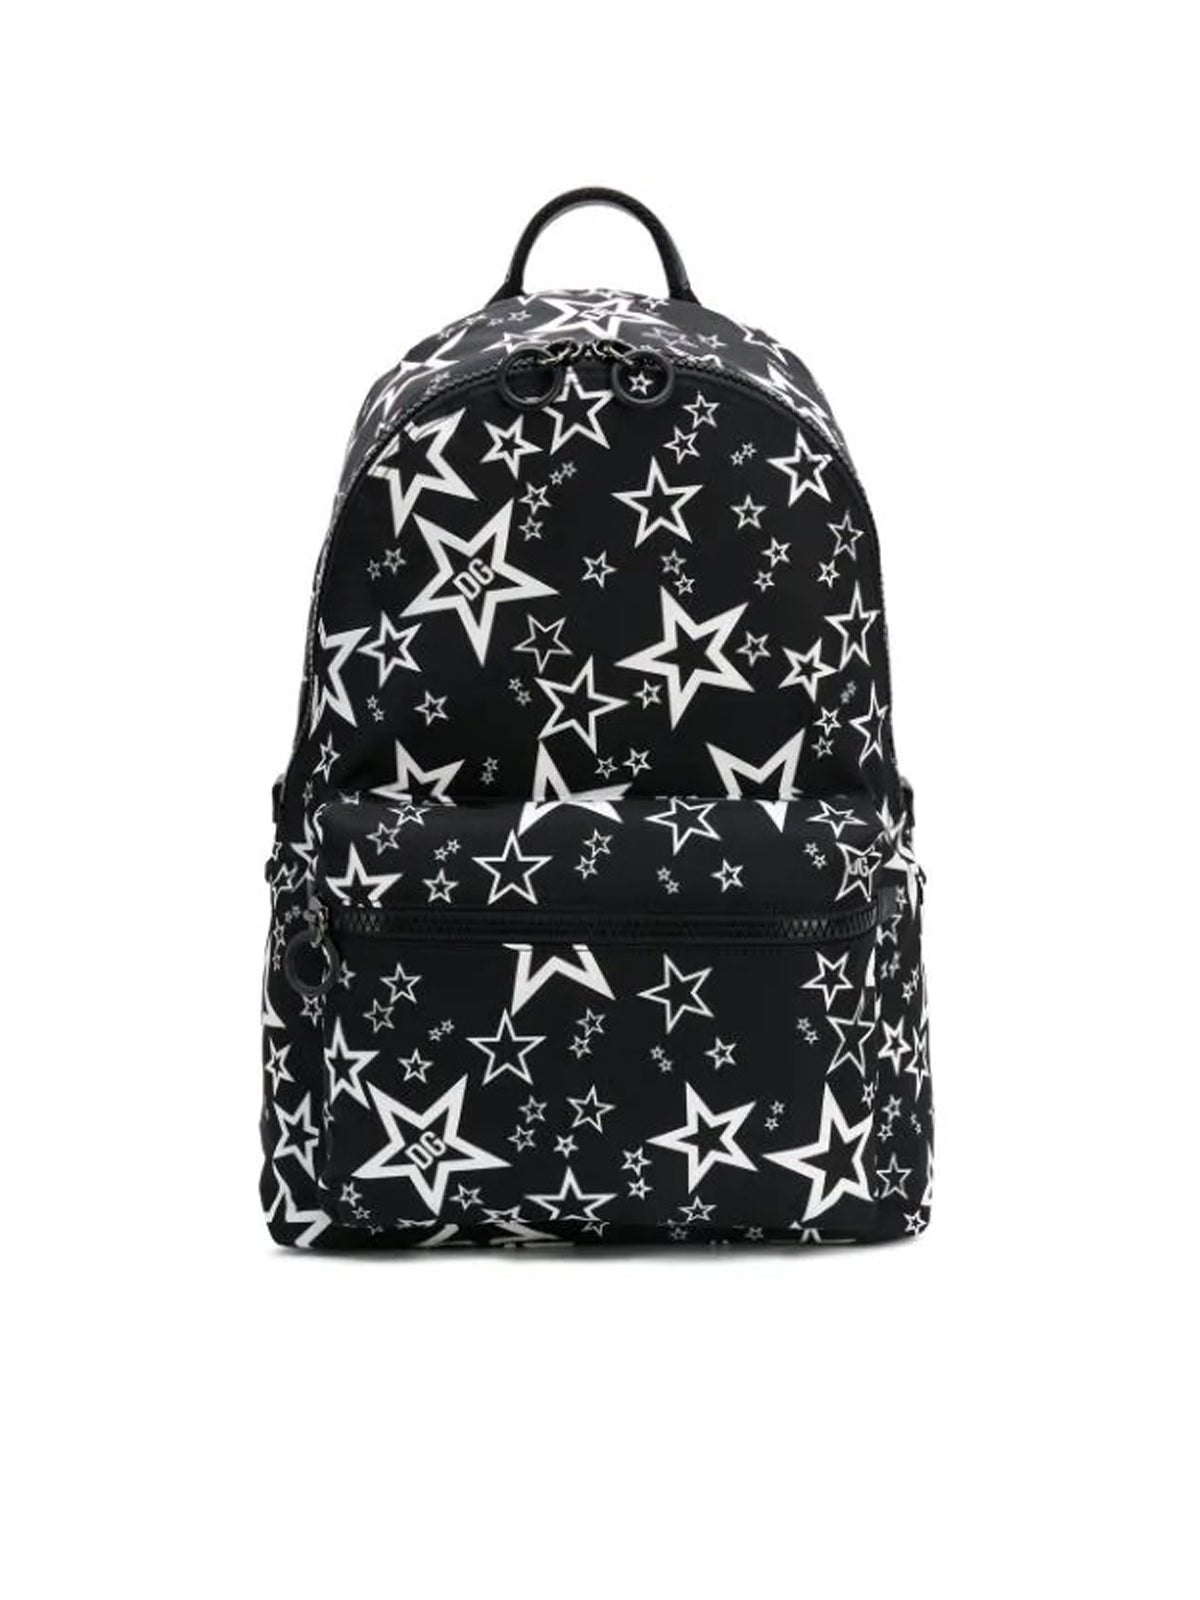 STAR MIX PRINT BACKPACK